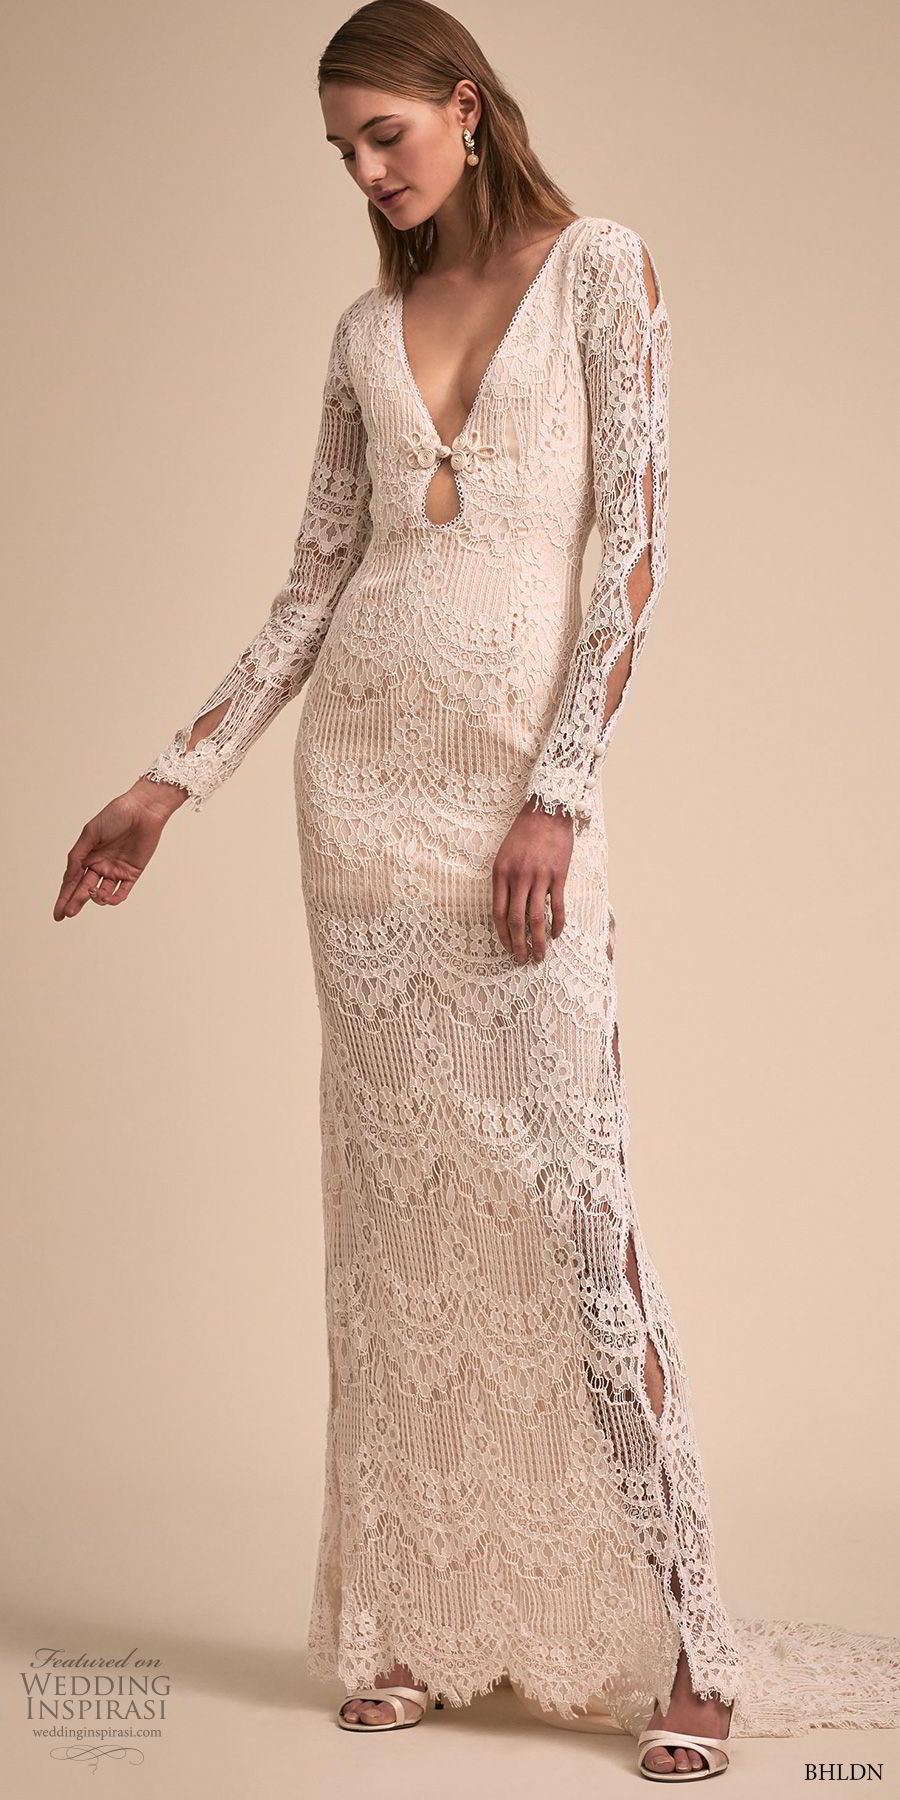 bhldn 2018 bridal long sleeves v neck full embellishment bohemian sheath wedding dress keyhole back short train (1) mv